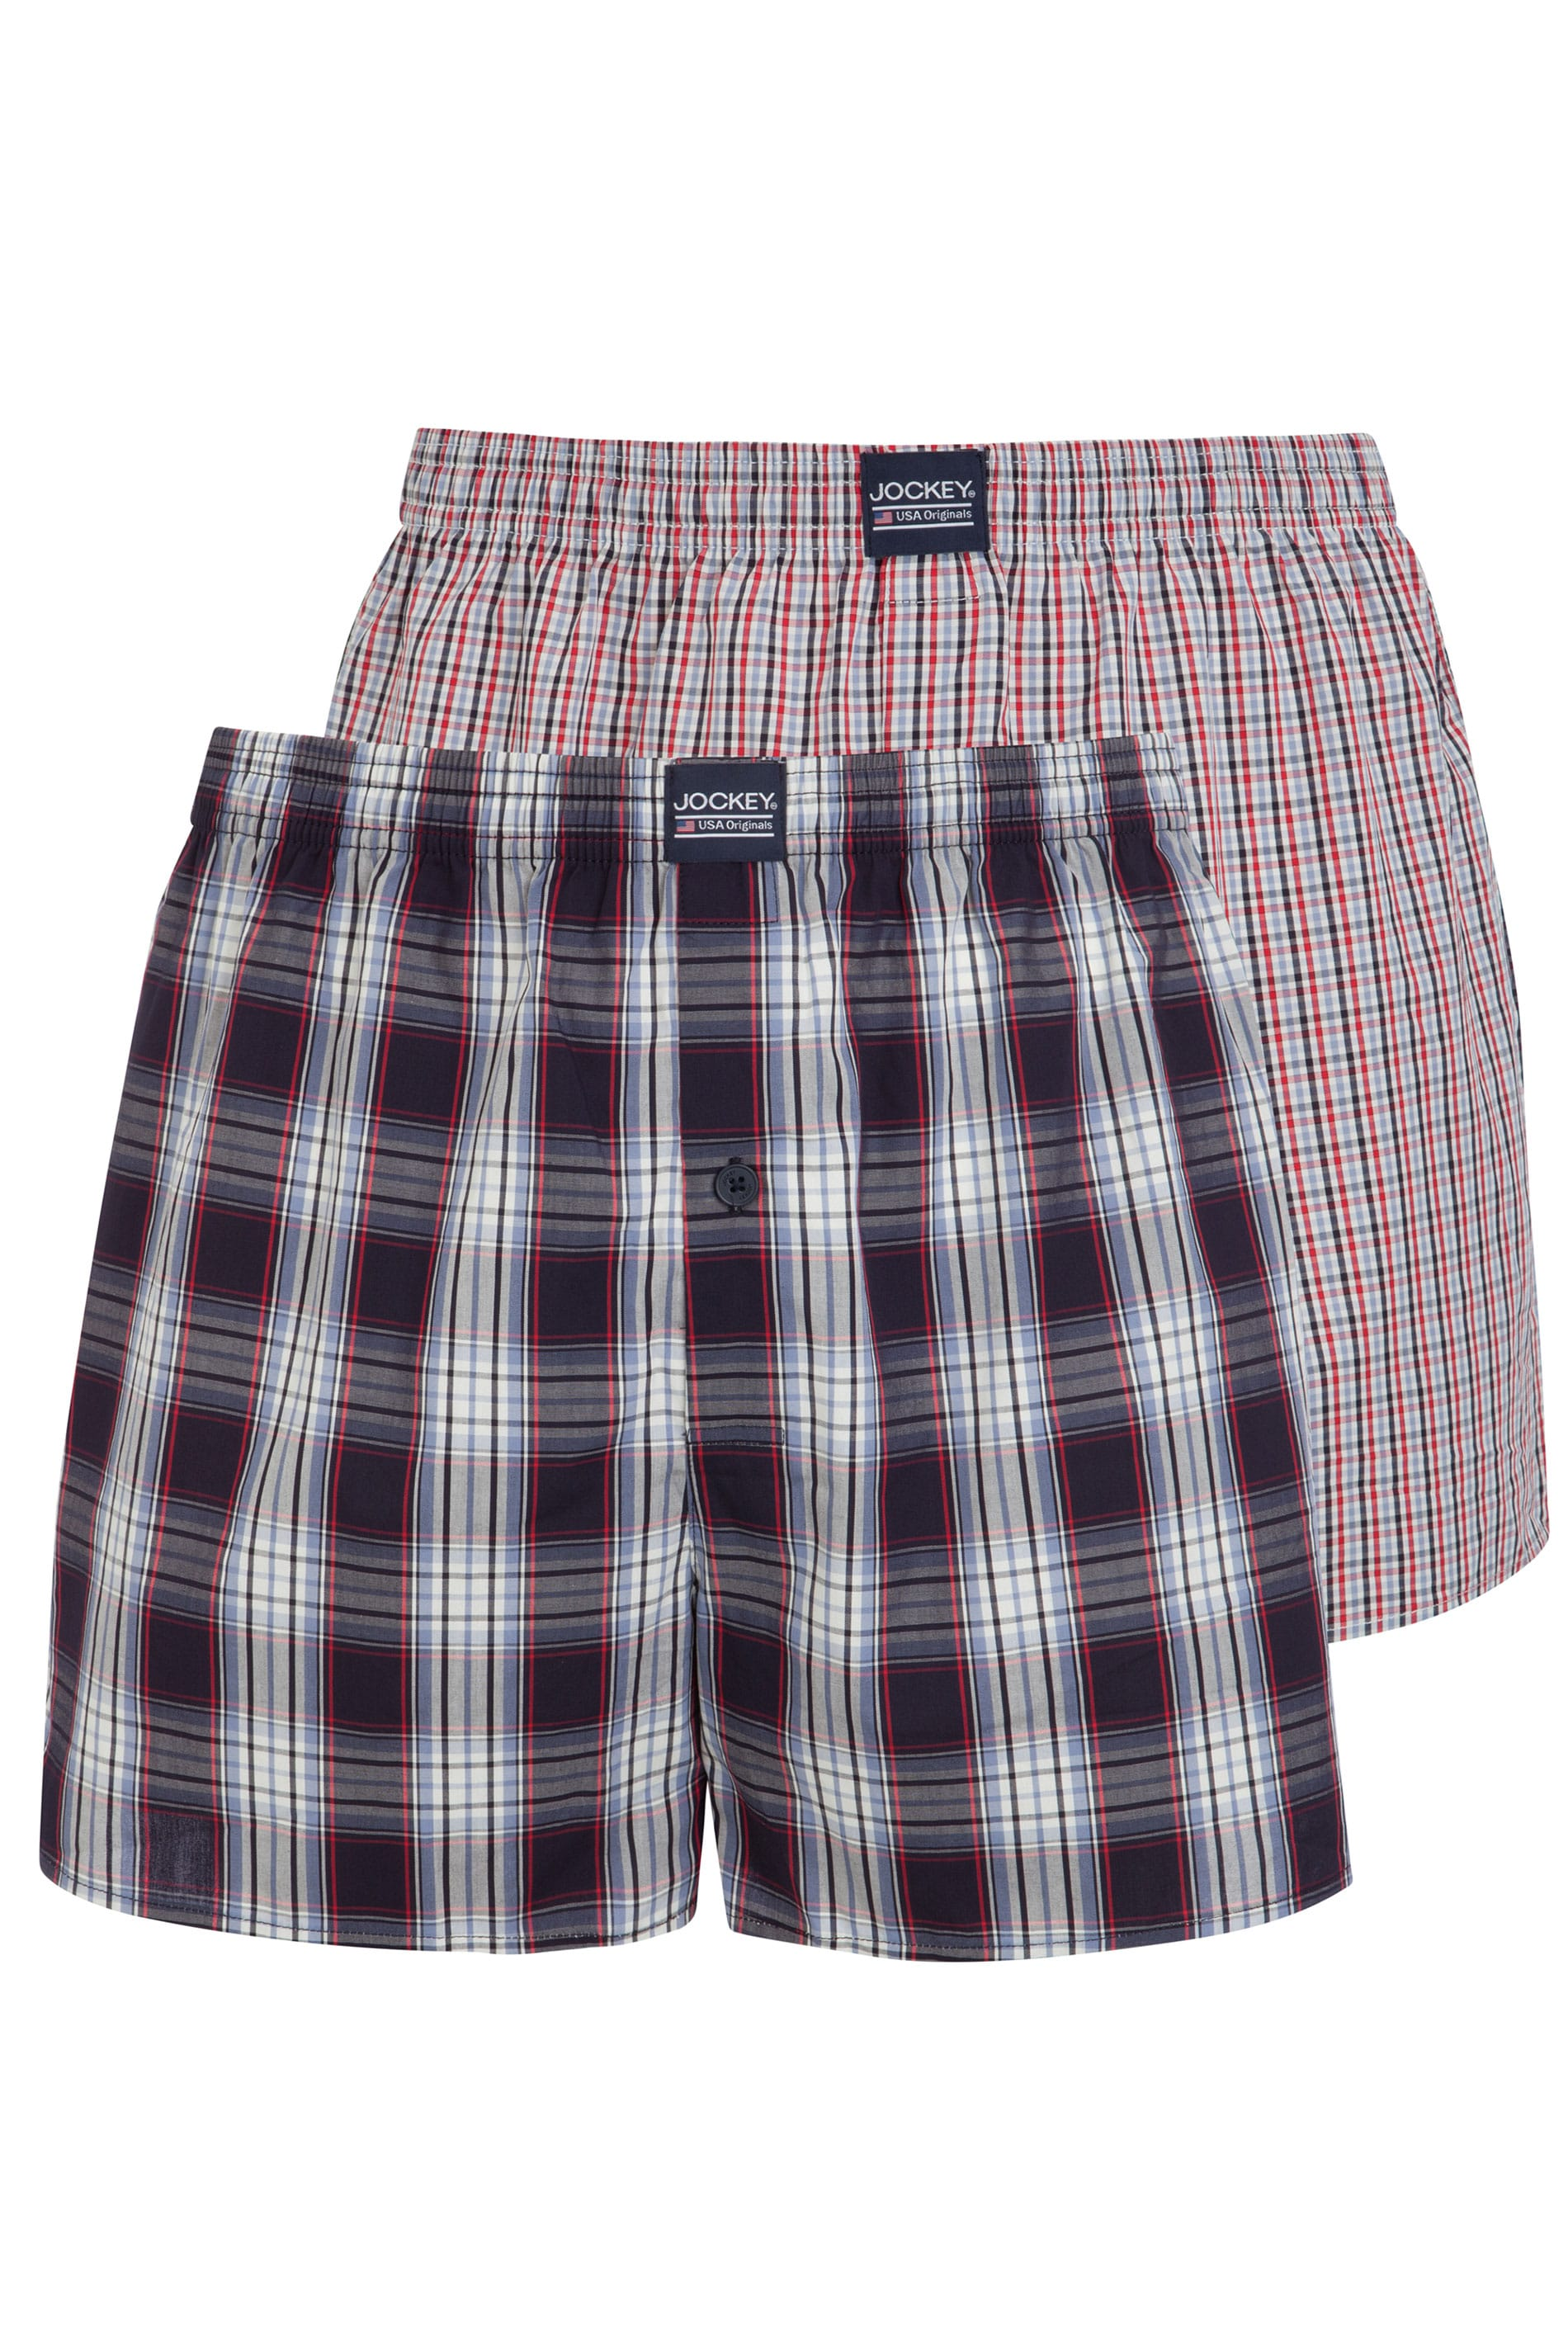 JOCKEY 2 PACK Red Woven Checked Boxers